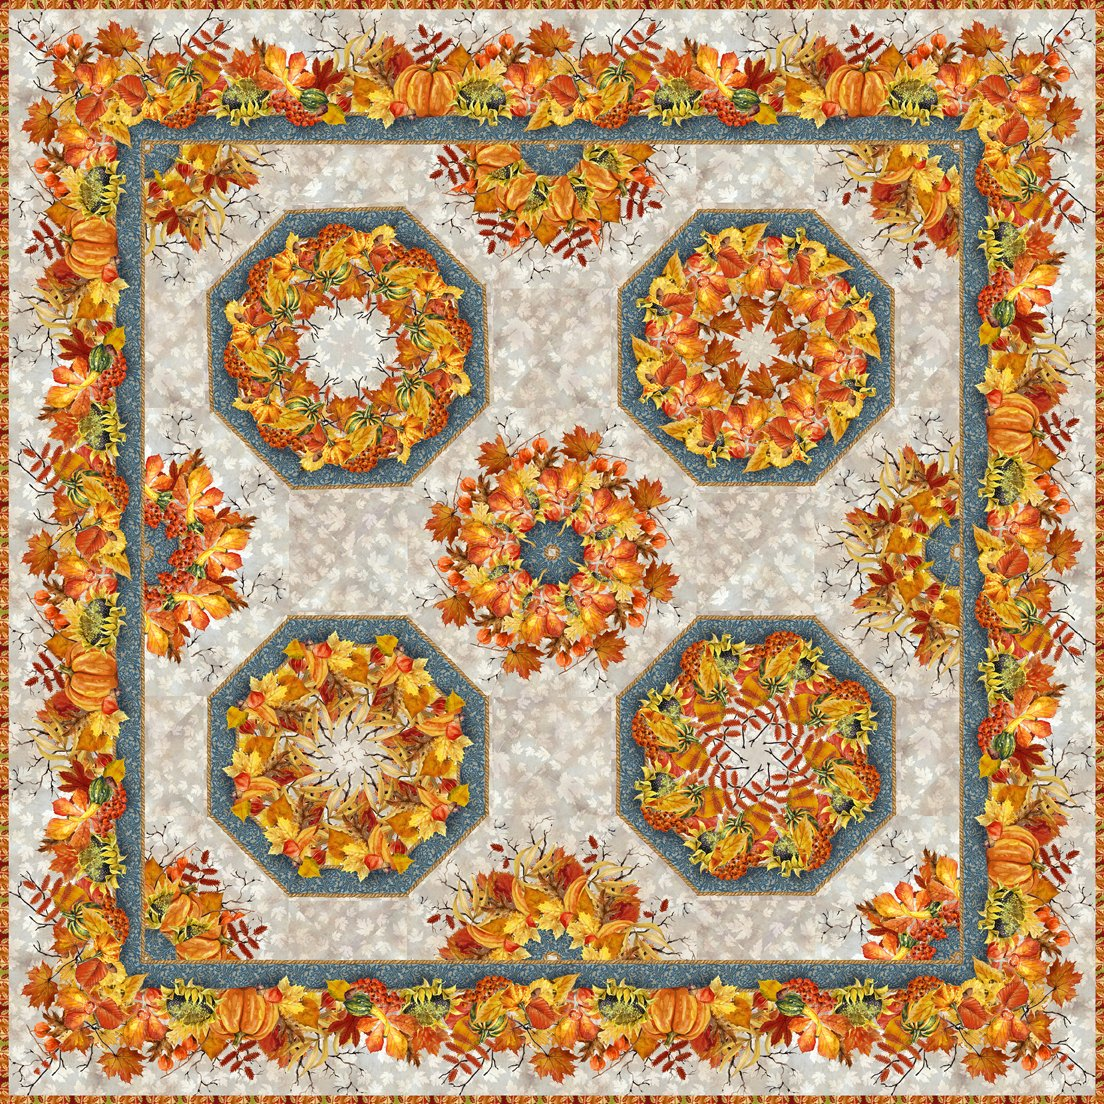 Our Autumn Friends Quilt Kaleidoscope Quilt